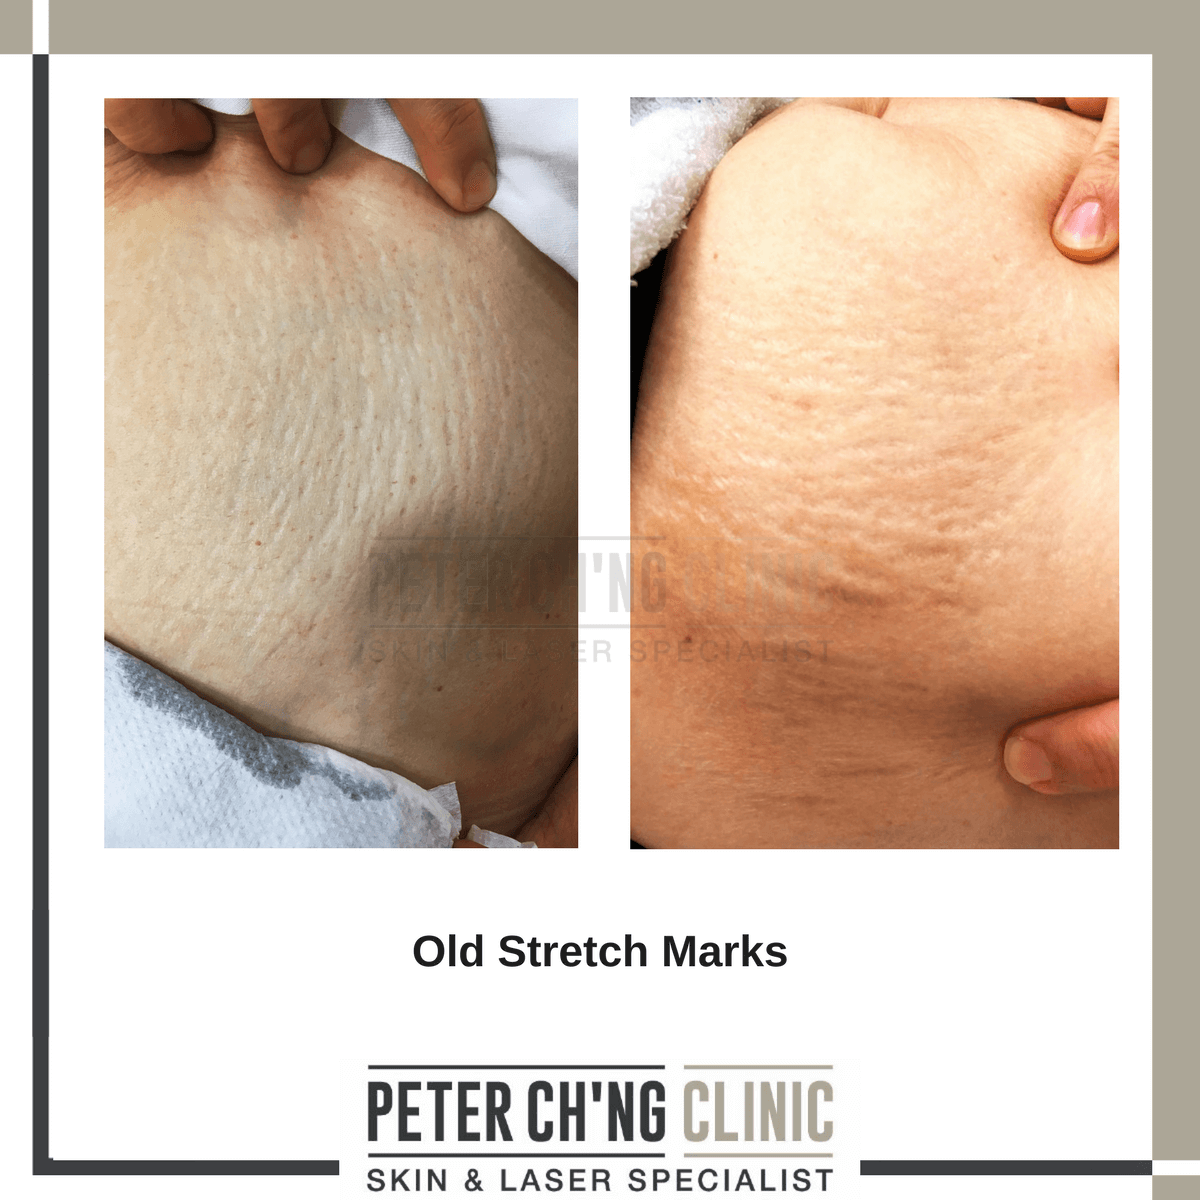 Old stretch marks